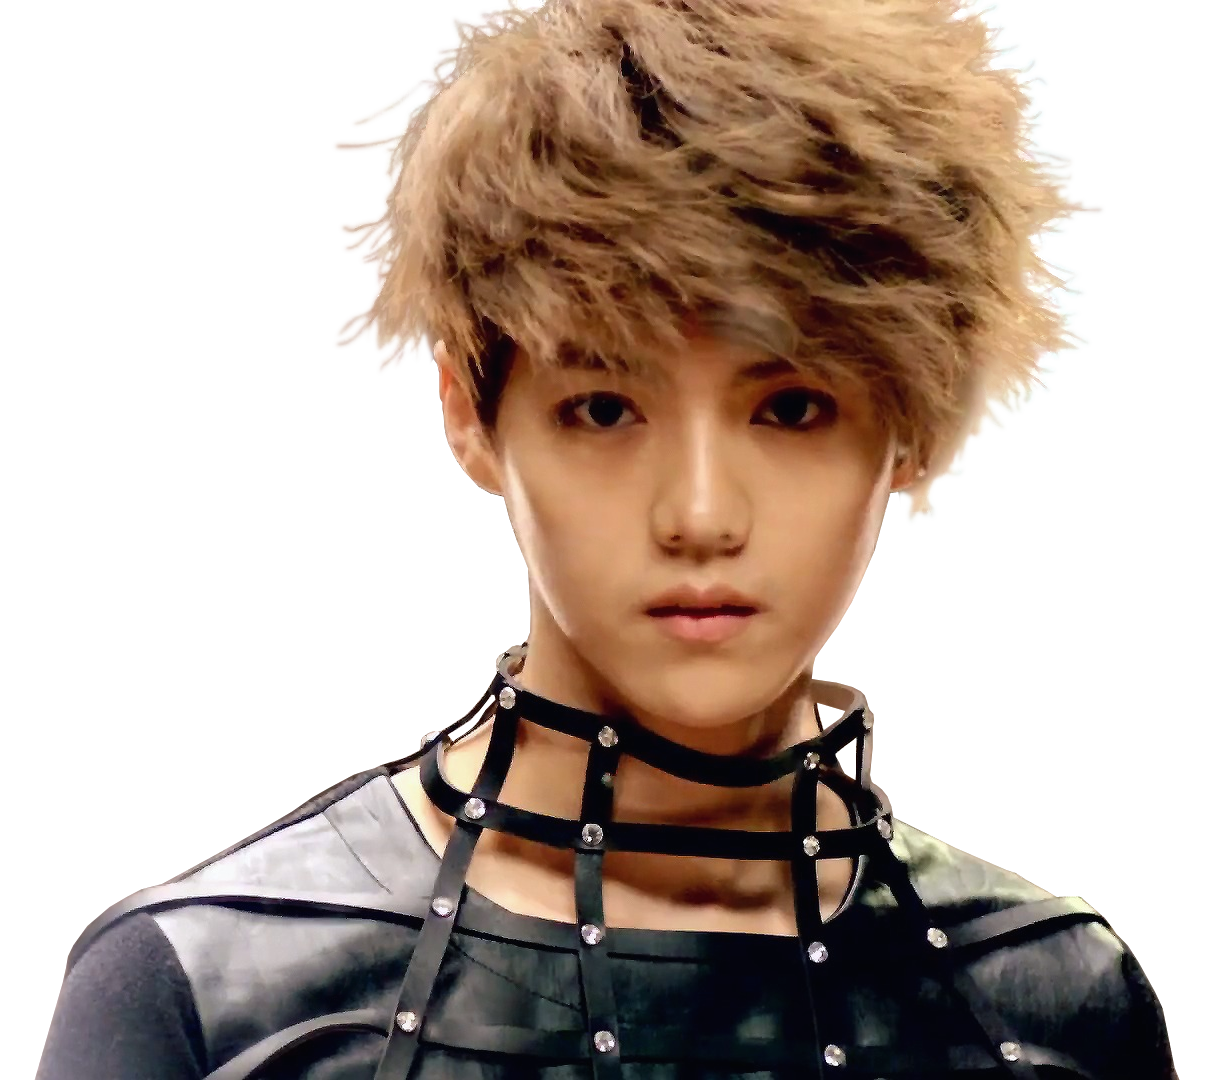 luhan Luhan edit lu han (鹿晗) or his stage name luhan (루한) is in the chinese-south korean boyband exo, exo-m subgroup he graduated from the beijing shida middle school and attended the beijing haidian foreign language shi yan school before leaving for south korea to attend yonsei university as a n exchange student.